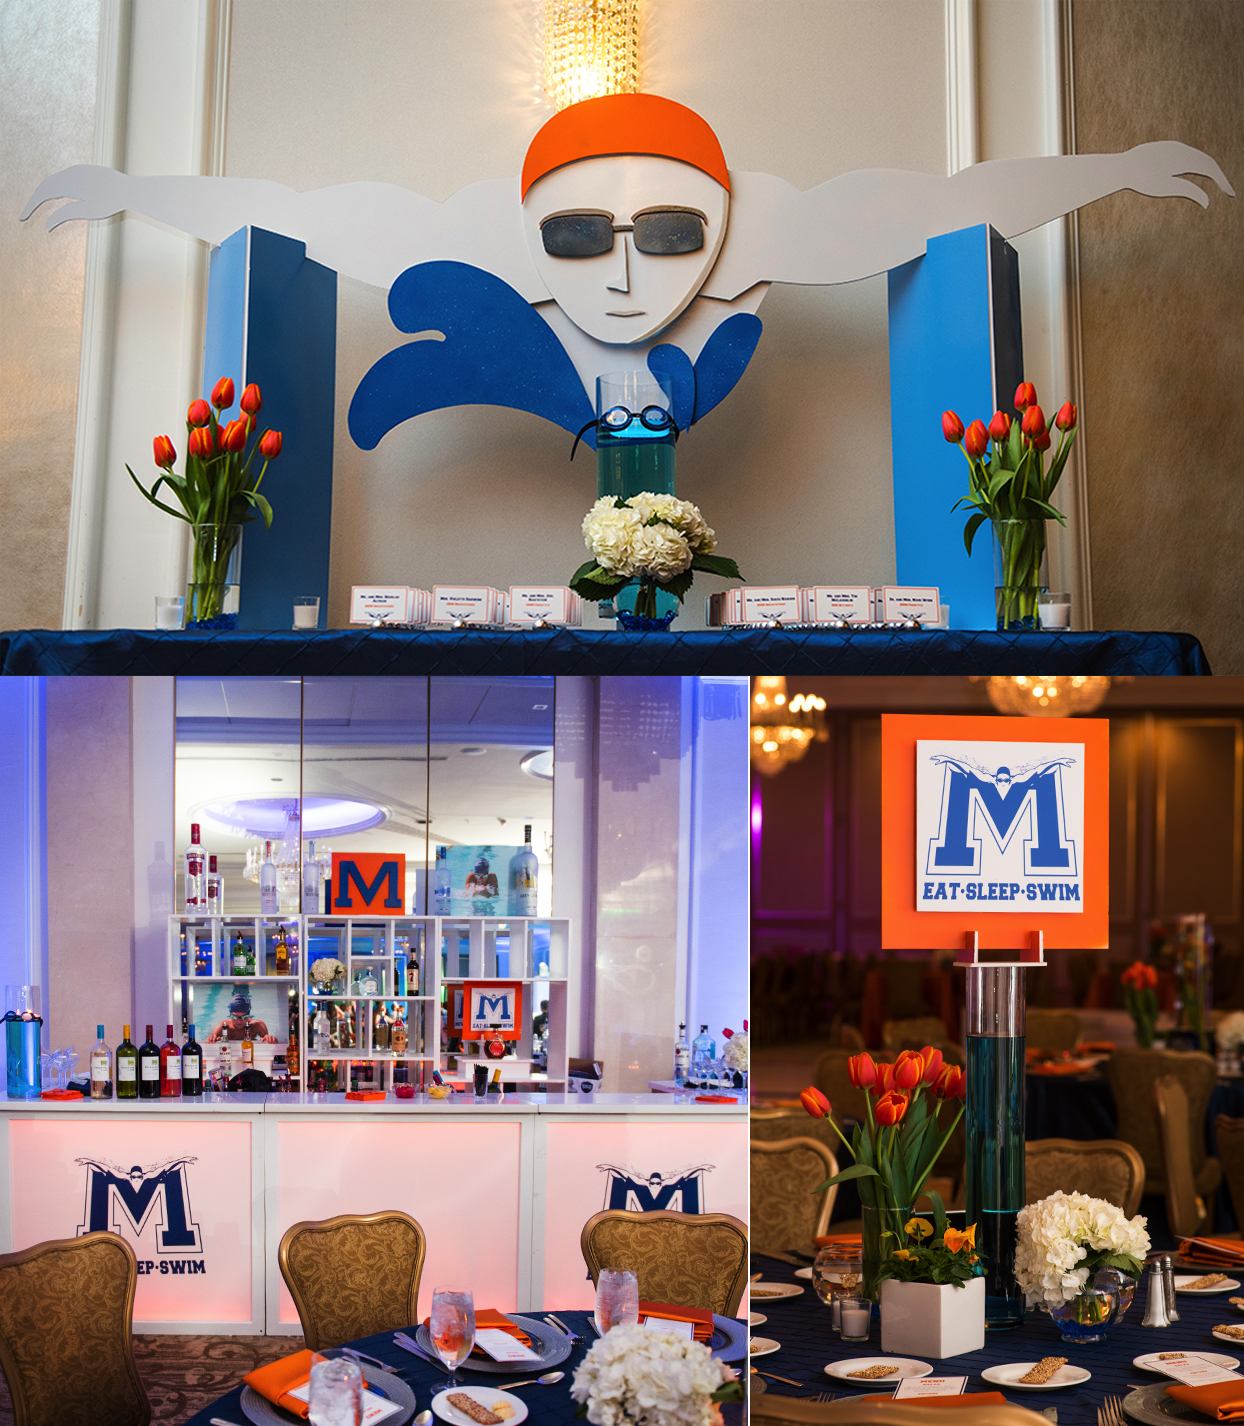 Bar-Bat-Mitzvah-Premier-Philadelphia-Photographer-Swim-Themed-Corin-Rocker-Hilton-City-Line-Mitzvah-Planner-Design-Handmade-Details